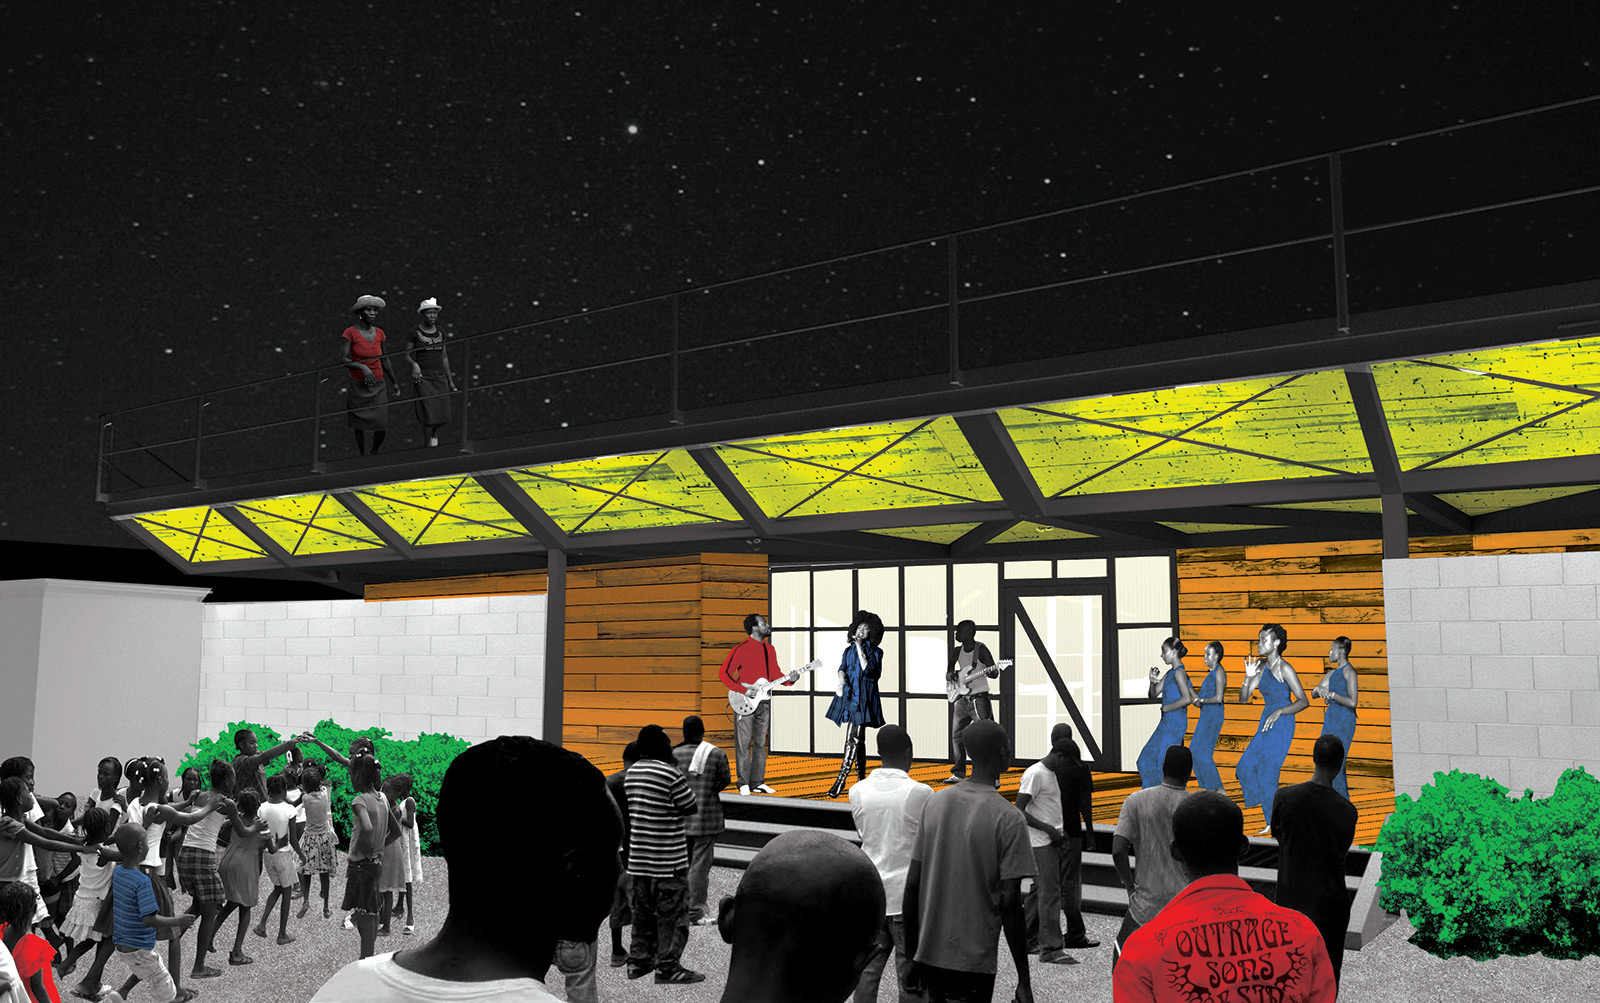 Perspective of the informal performance stage positioned between the open space of the radio station and YELE studio